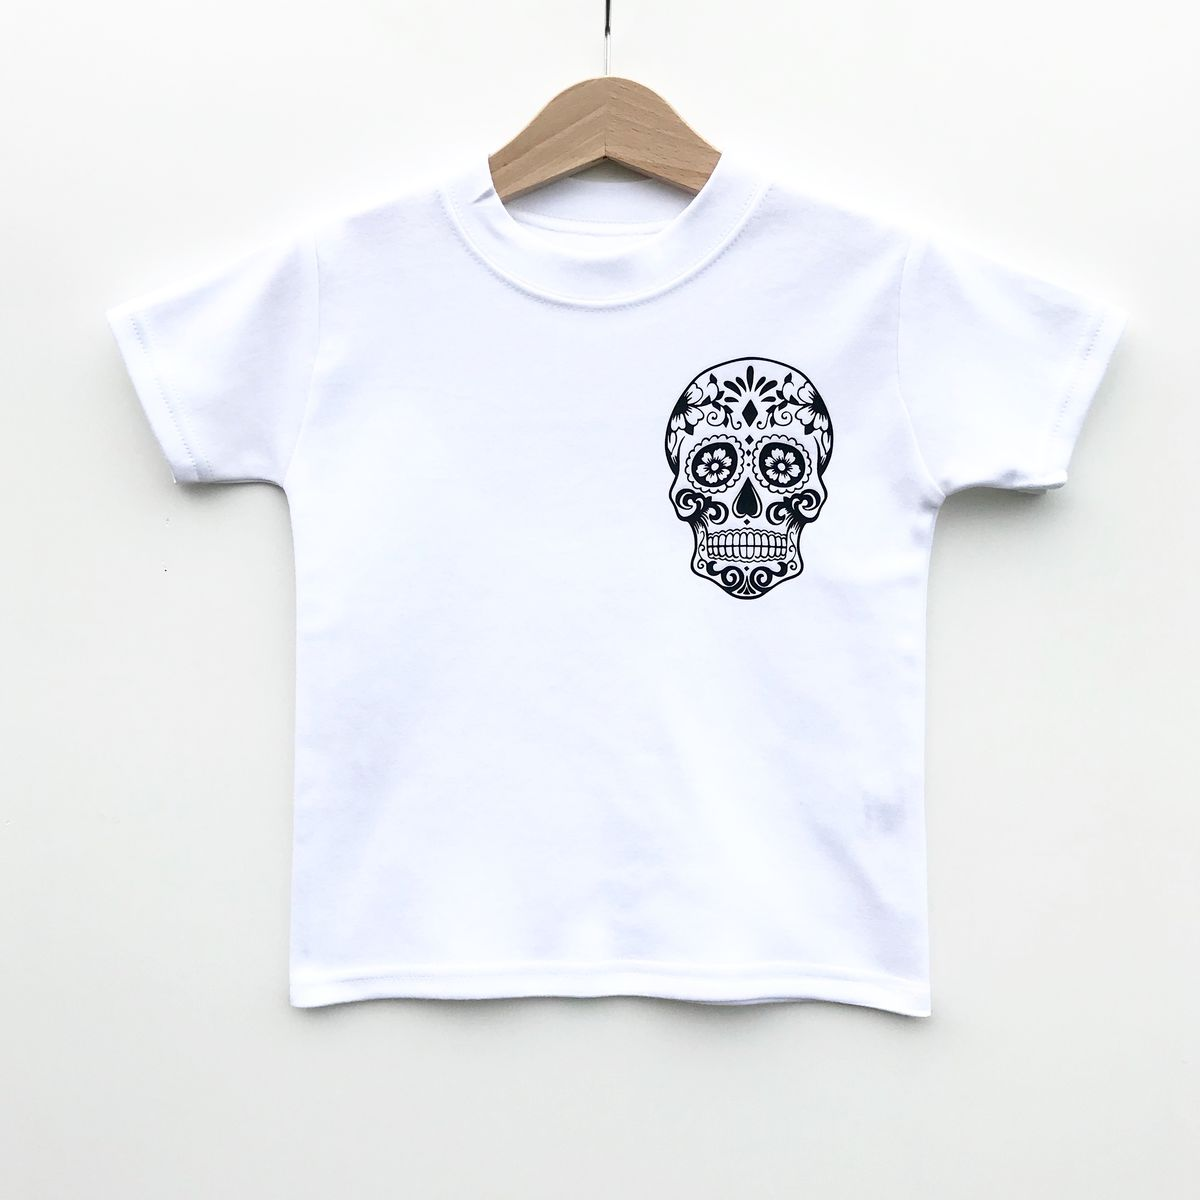 Sugar Skull Pocket Print Black & White Kids T-Shirts (various sizes) - product images  of